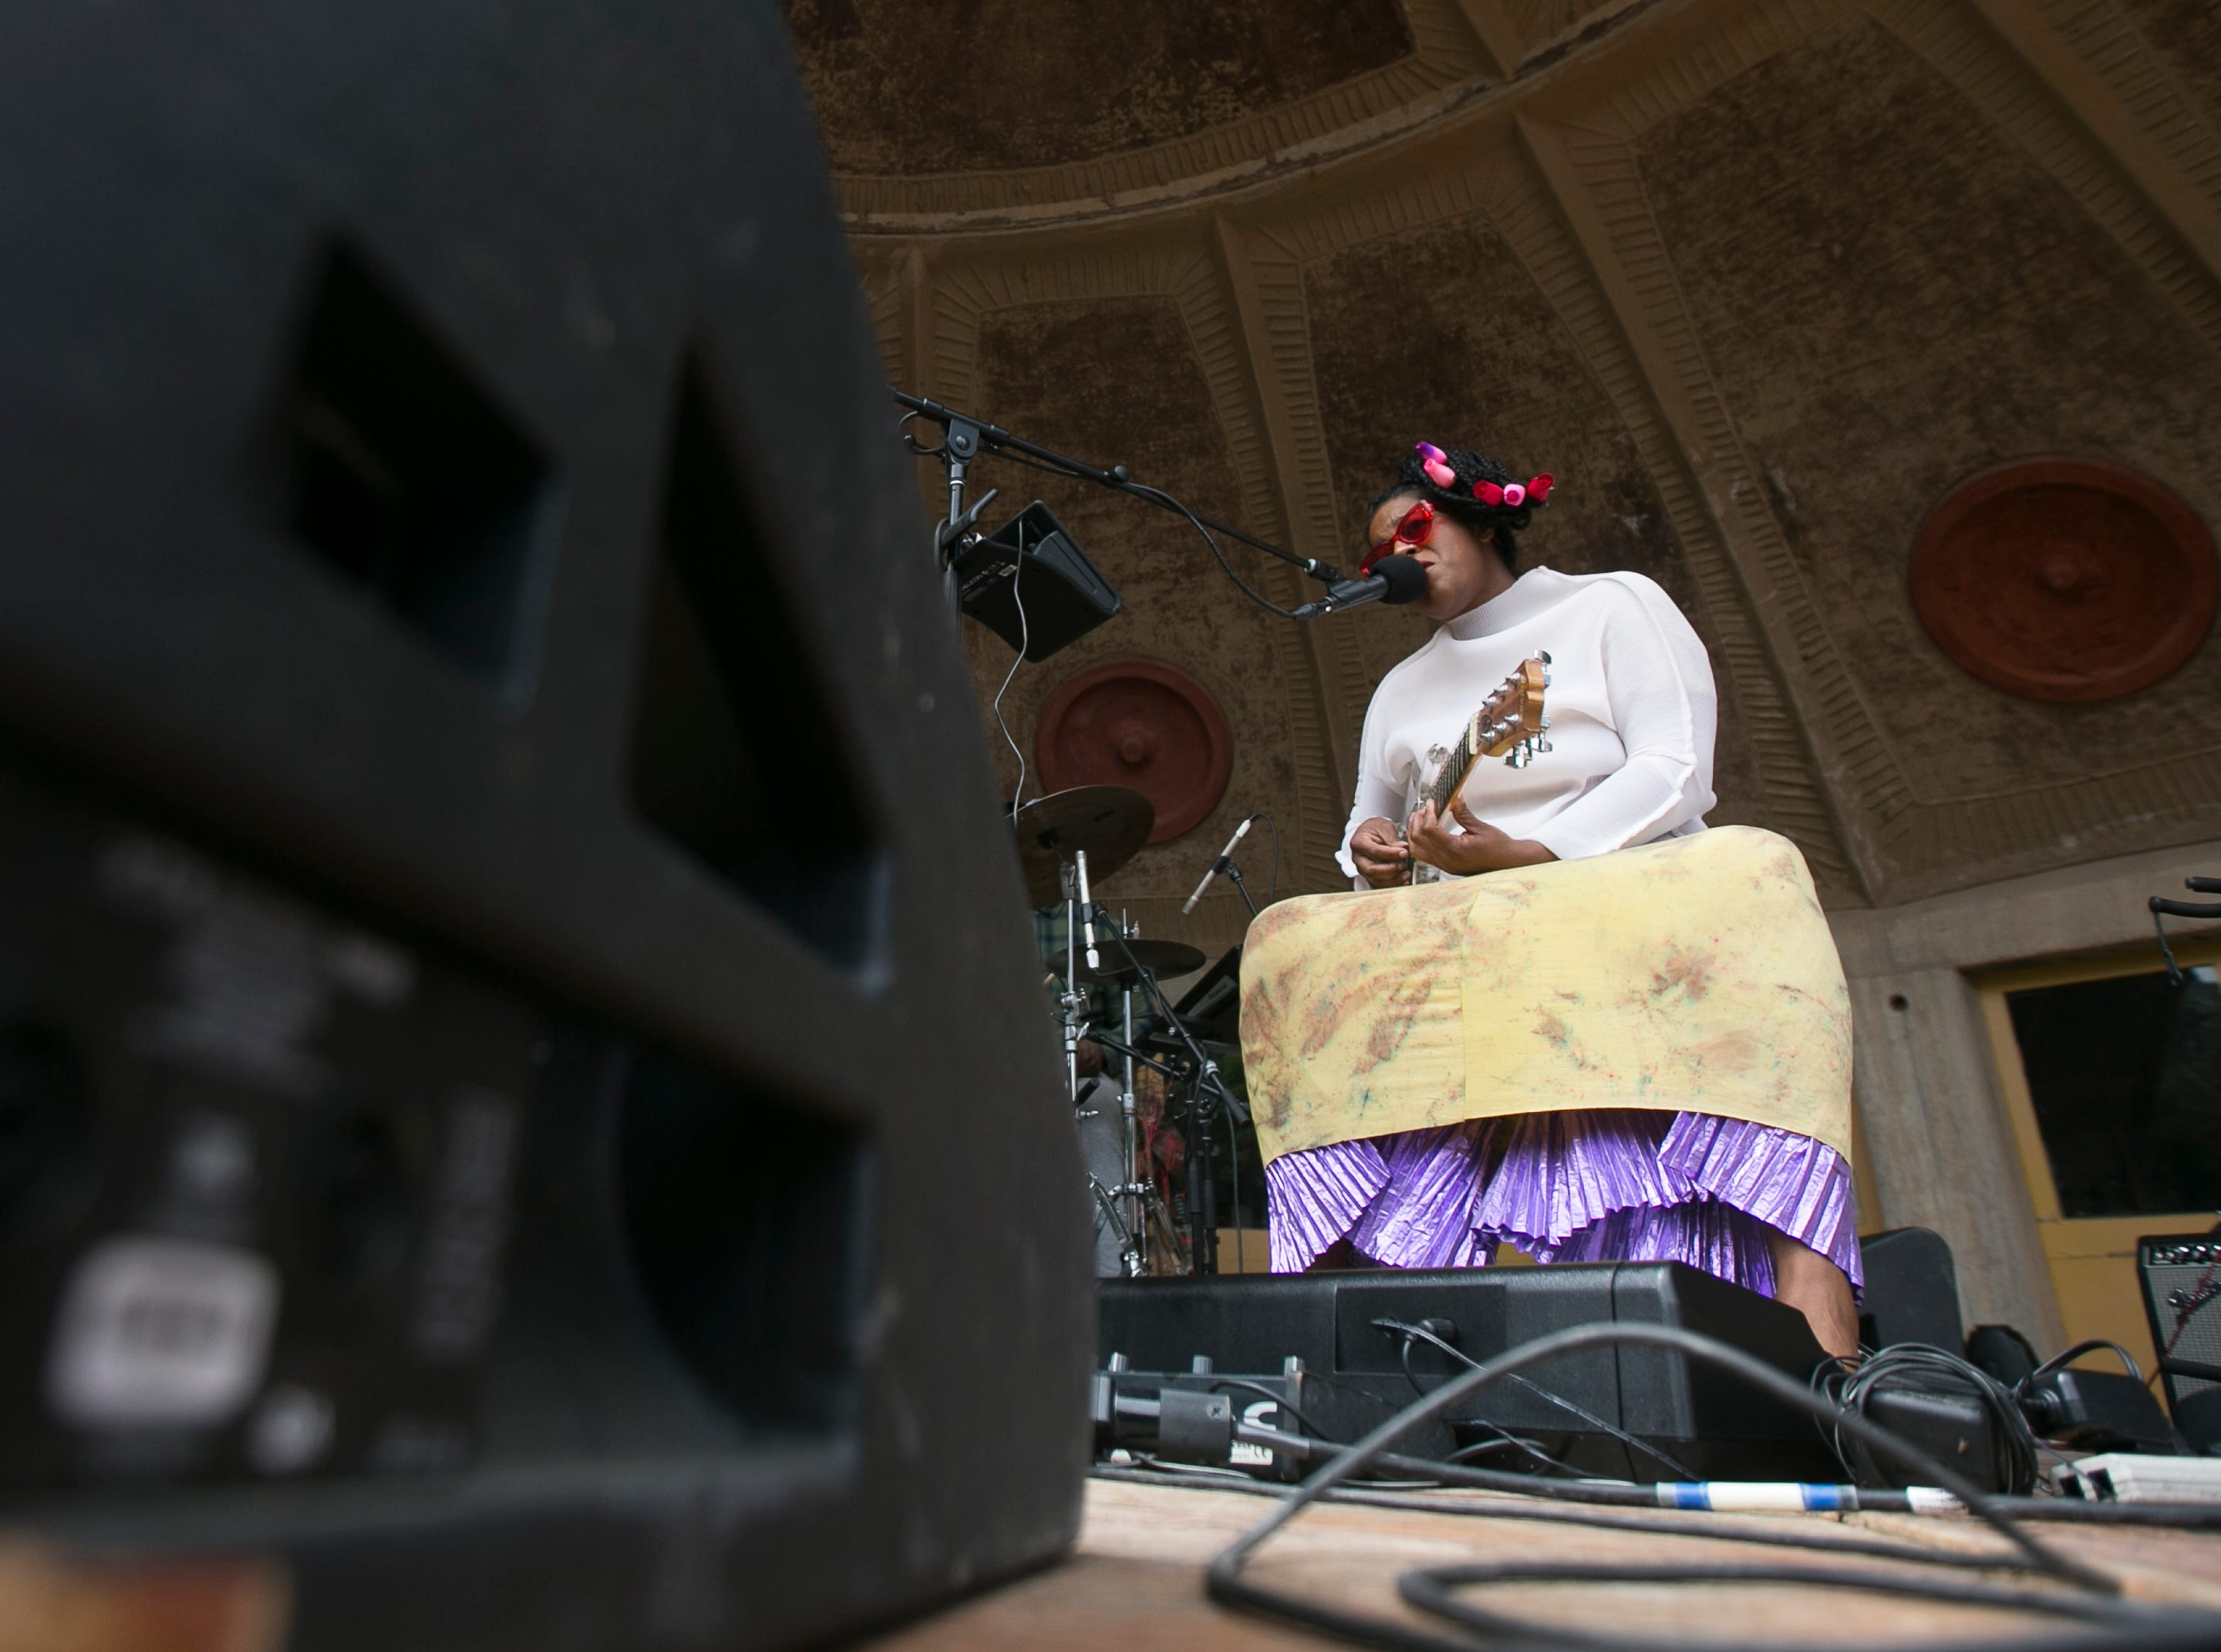 L'Rain performs at the 2019 FORM Arcosanti music festival near Camp Verde, Arizona, on May 12, 2019.